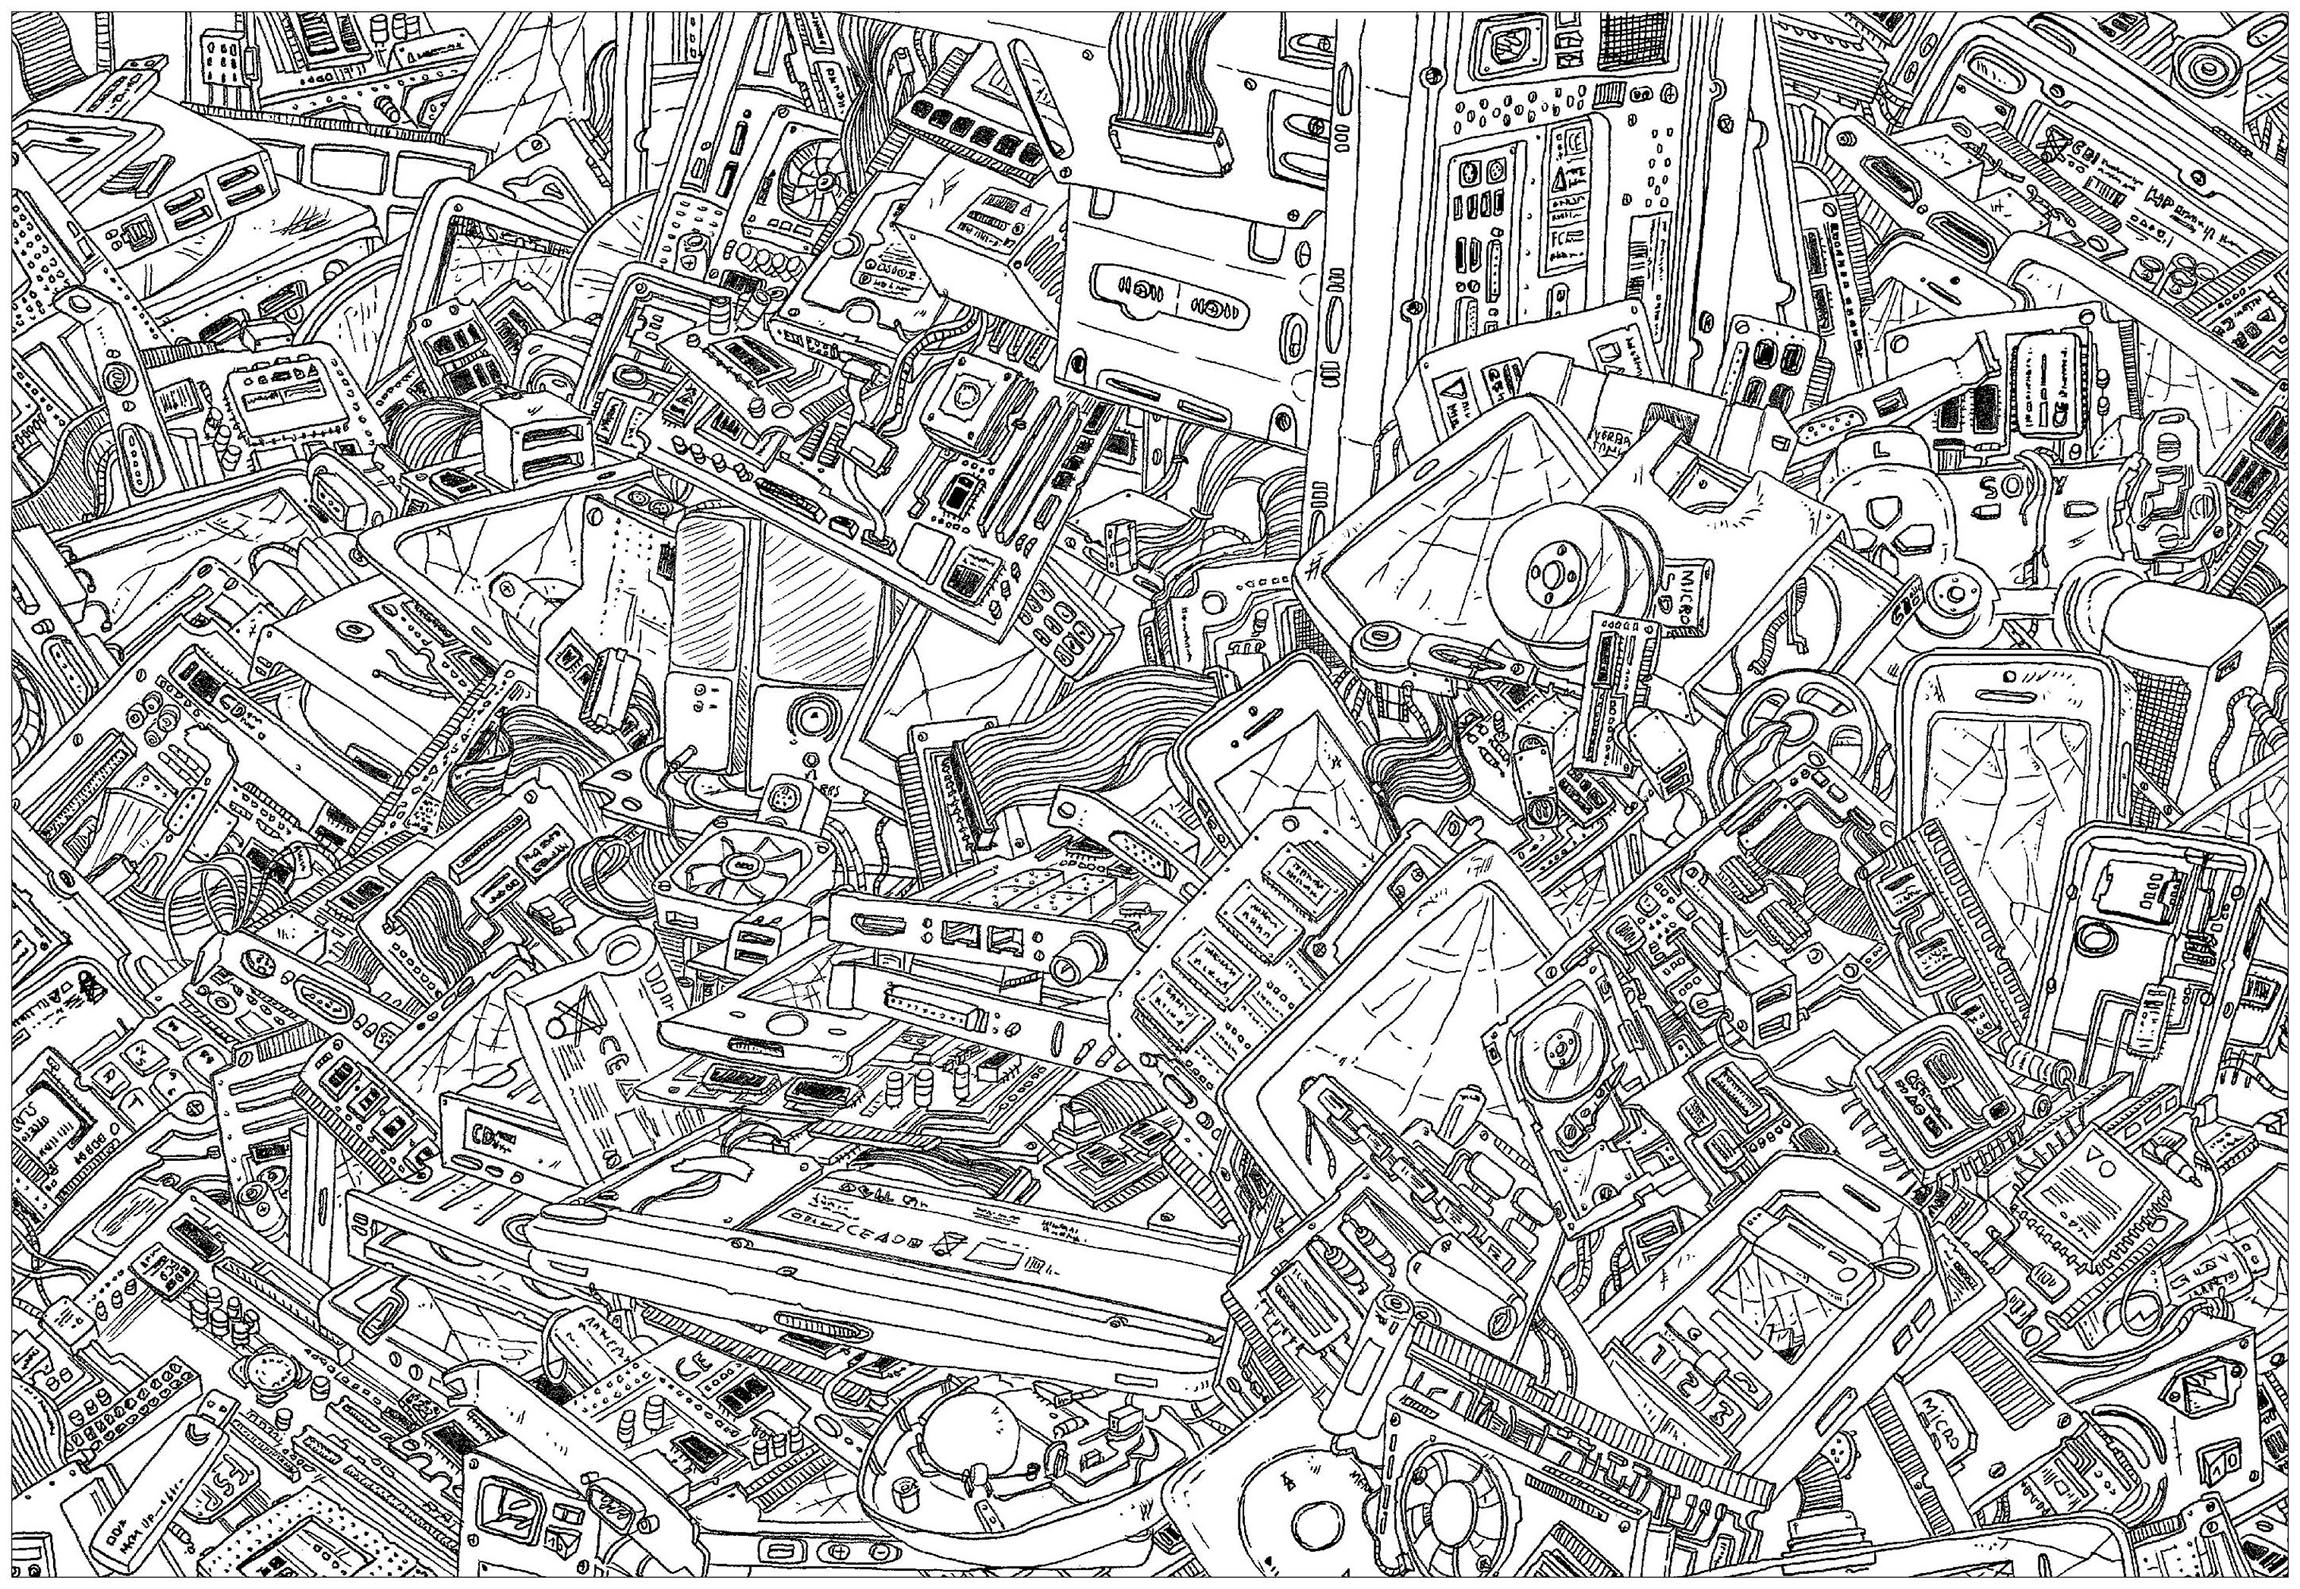 computers a complex coloring page where is waldo style - Complex Coloring Pages